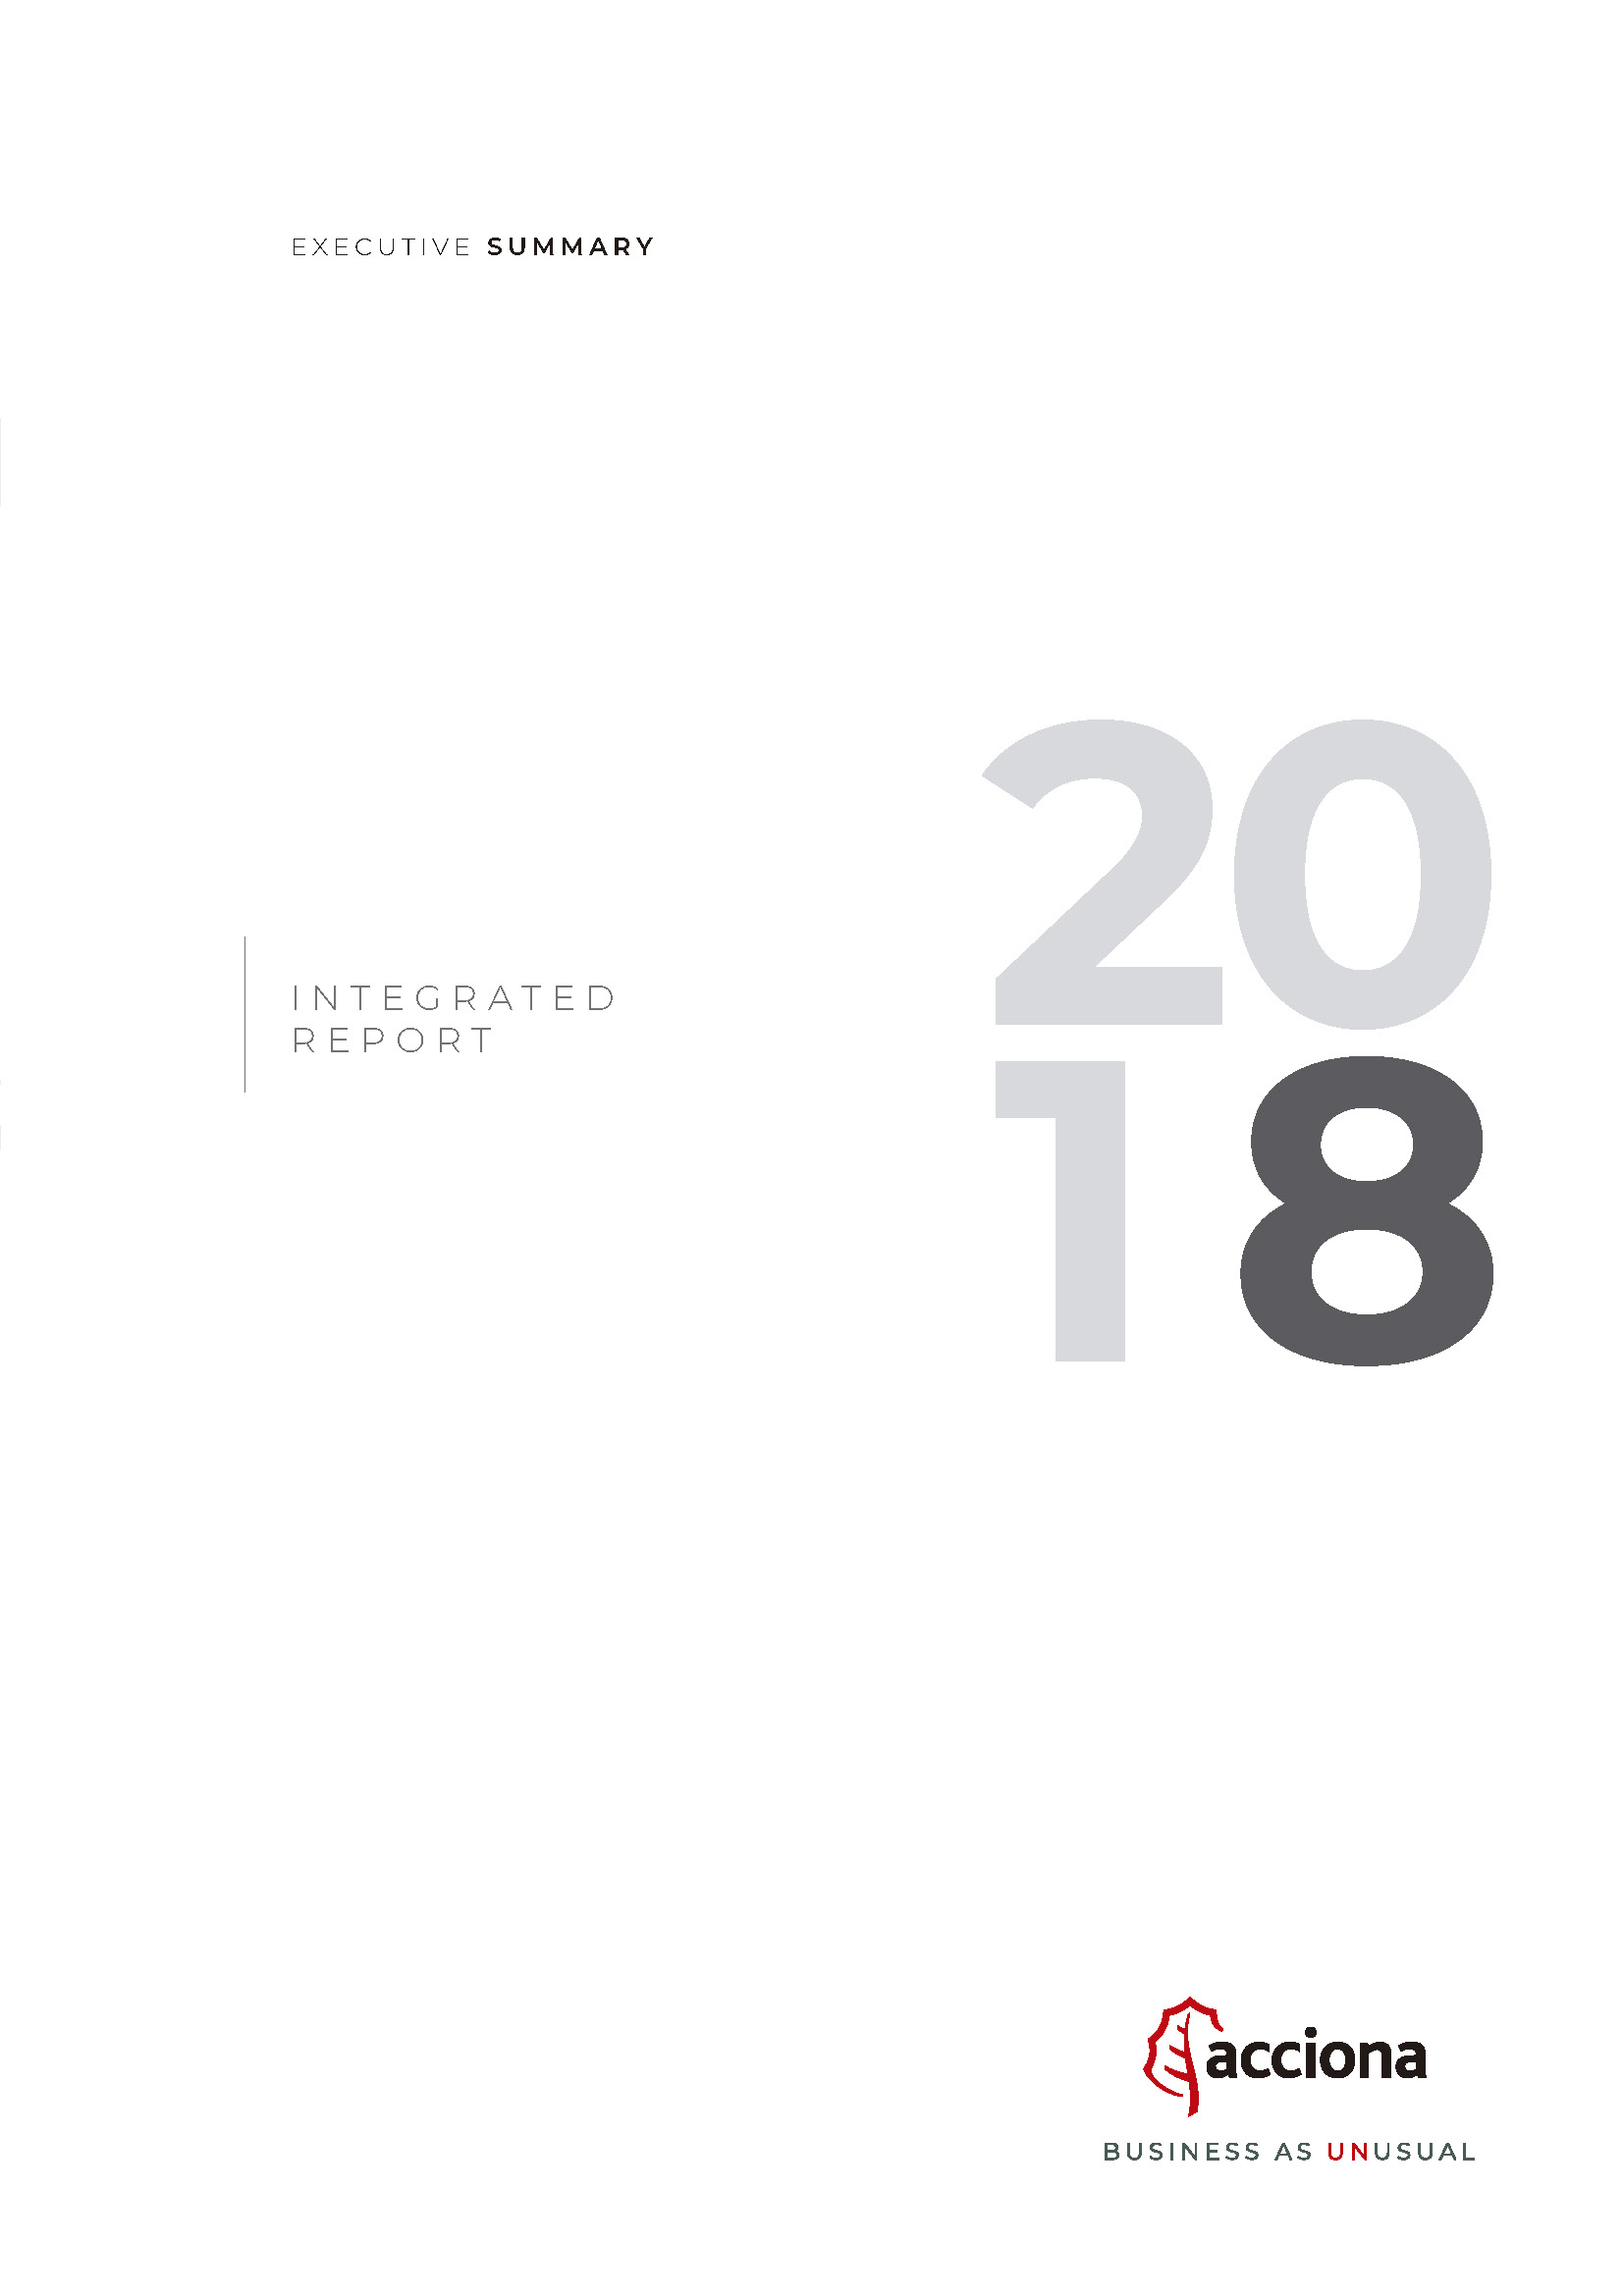 annual report 2018 Executive Summary